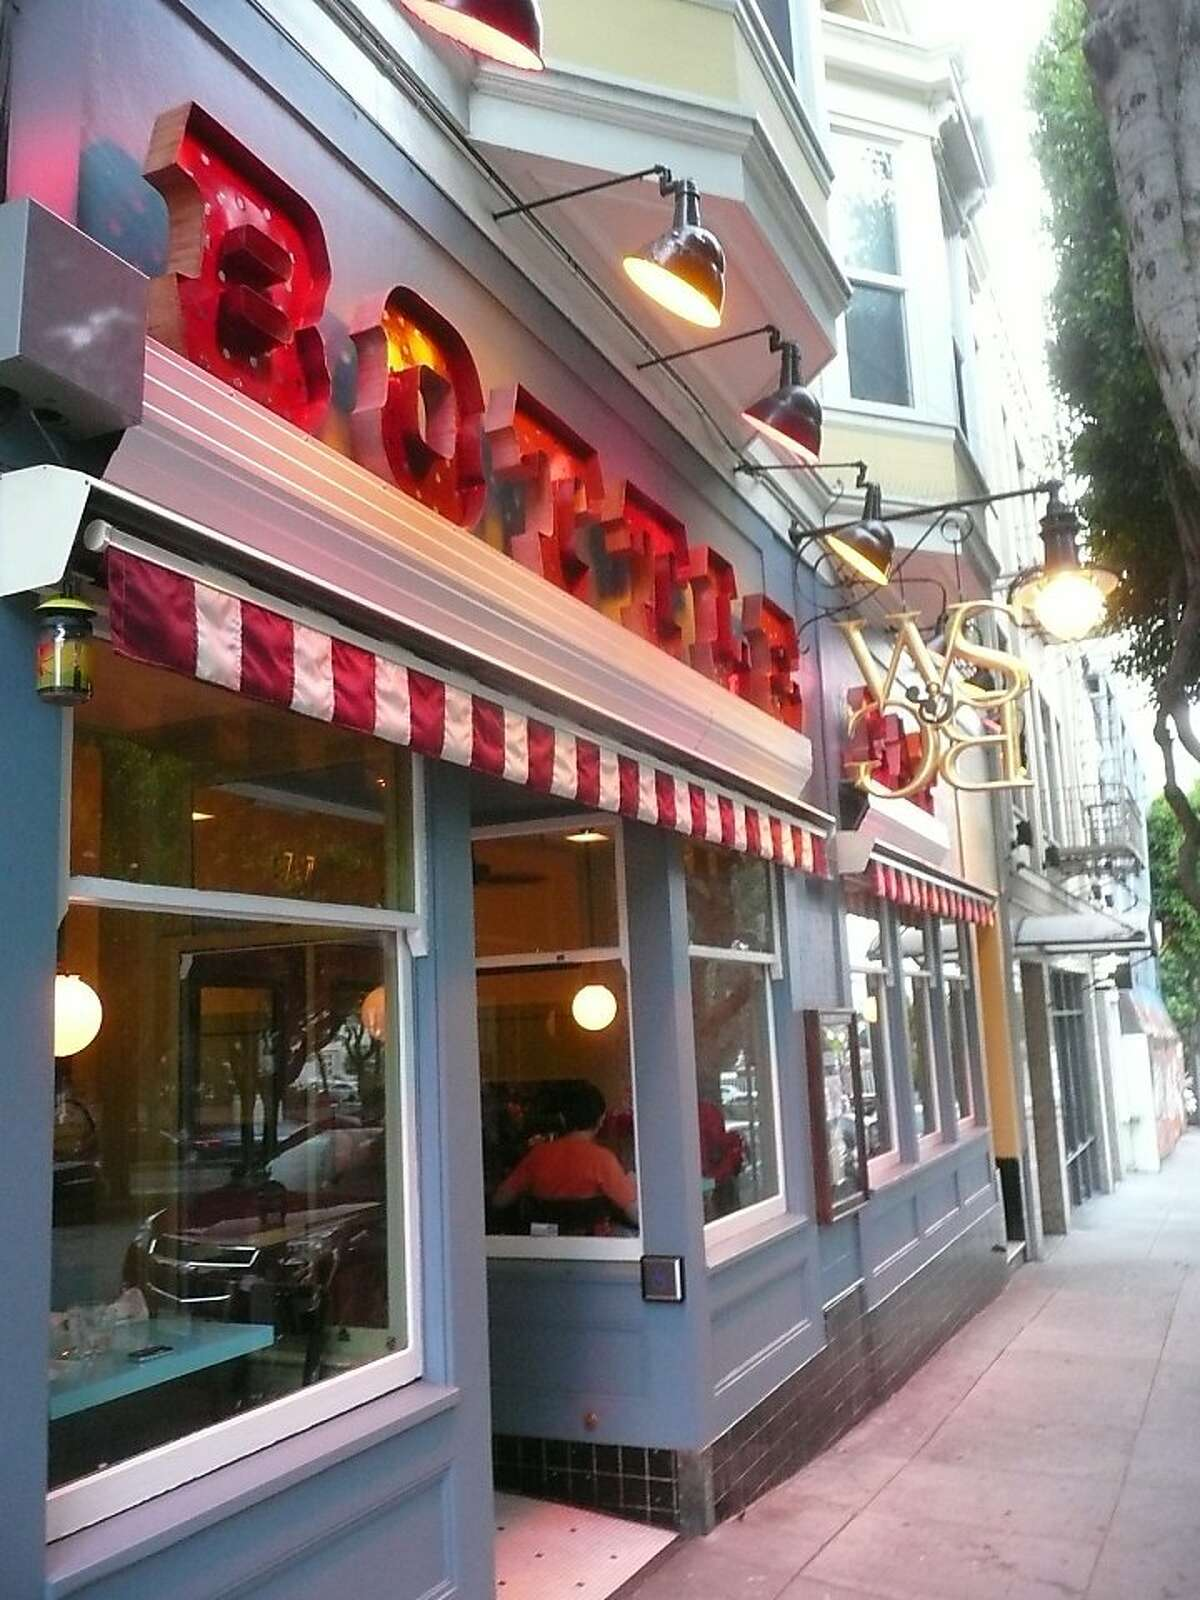 North Beach's Bottle Cap offers classic cocktails and American dishes such as a flat iron steak and composed heirloom tomato salad.